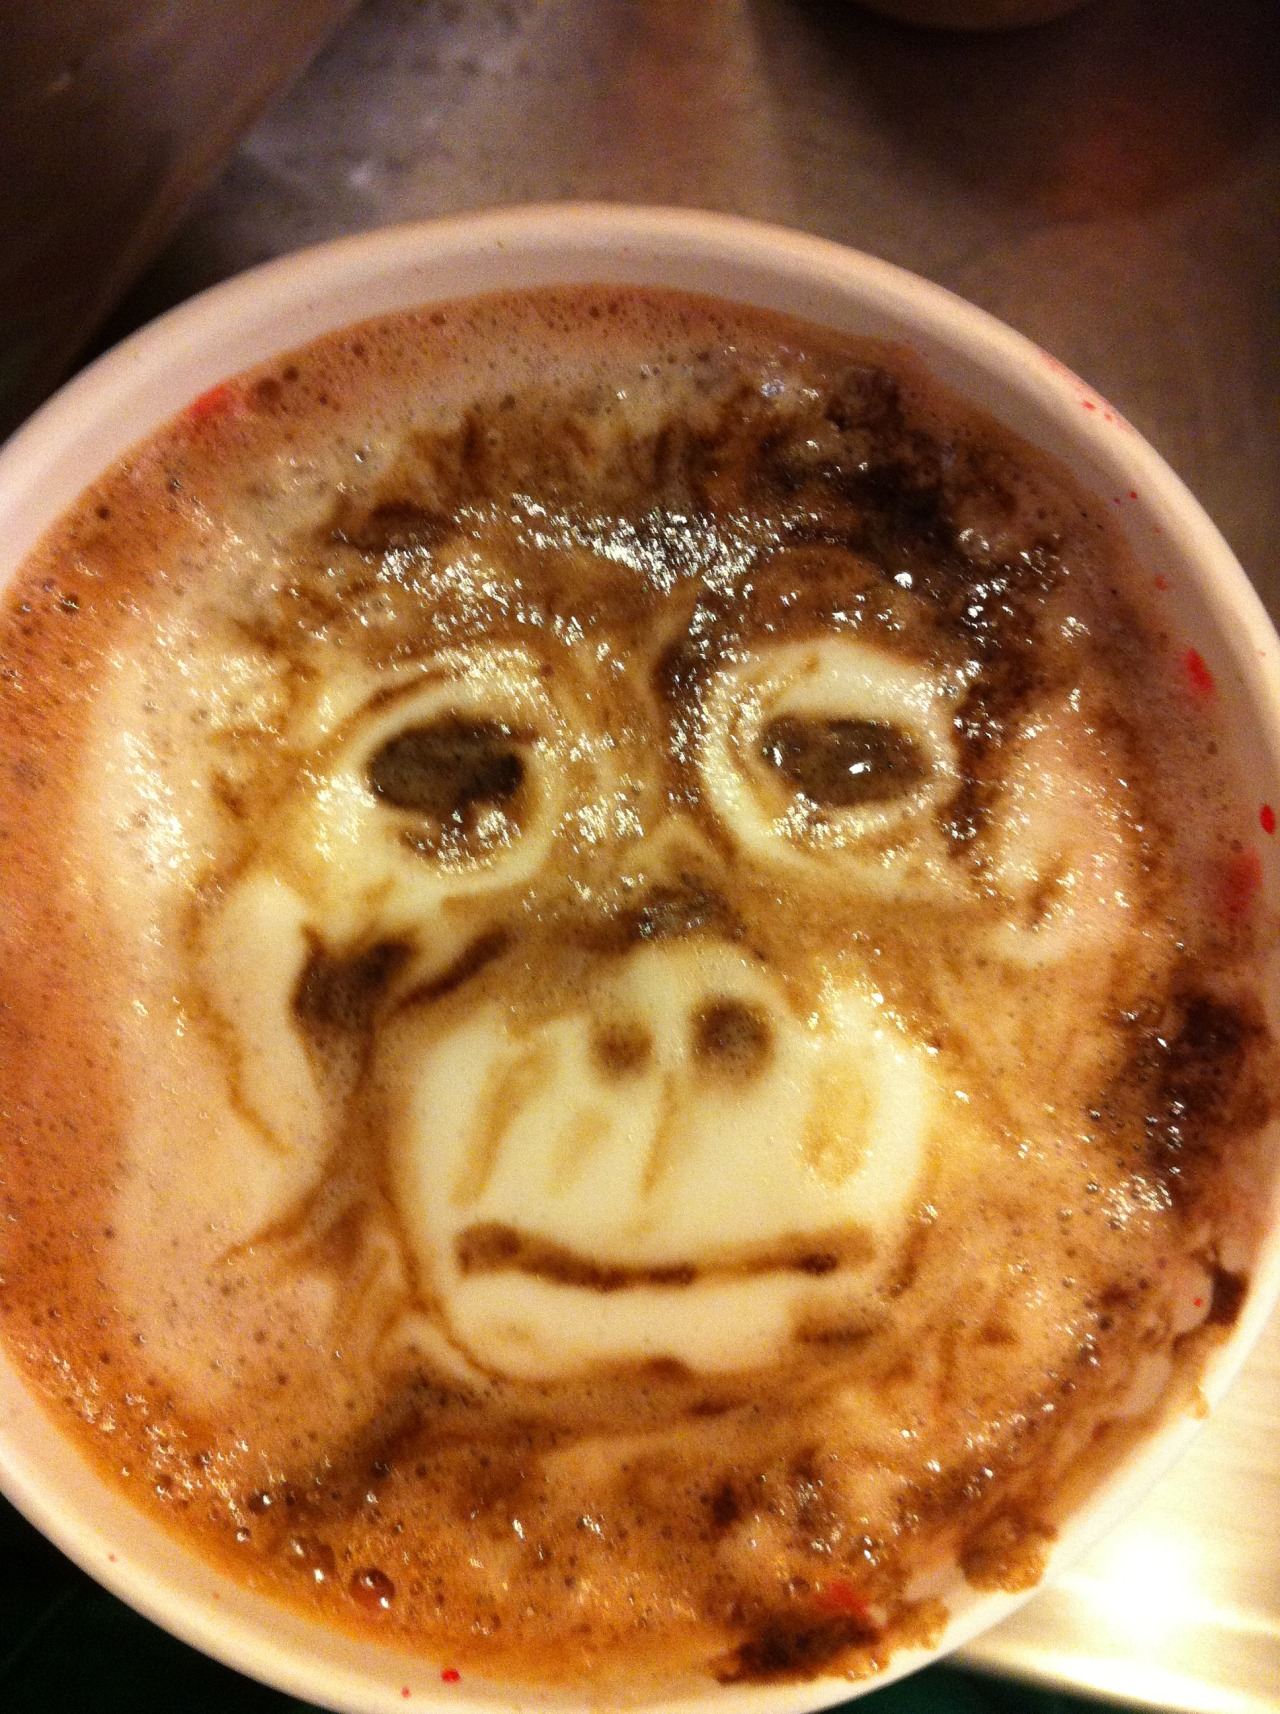 Coffee Art With Chocolate Syrup Anthropological Sketches And Zoological Felting A Little